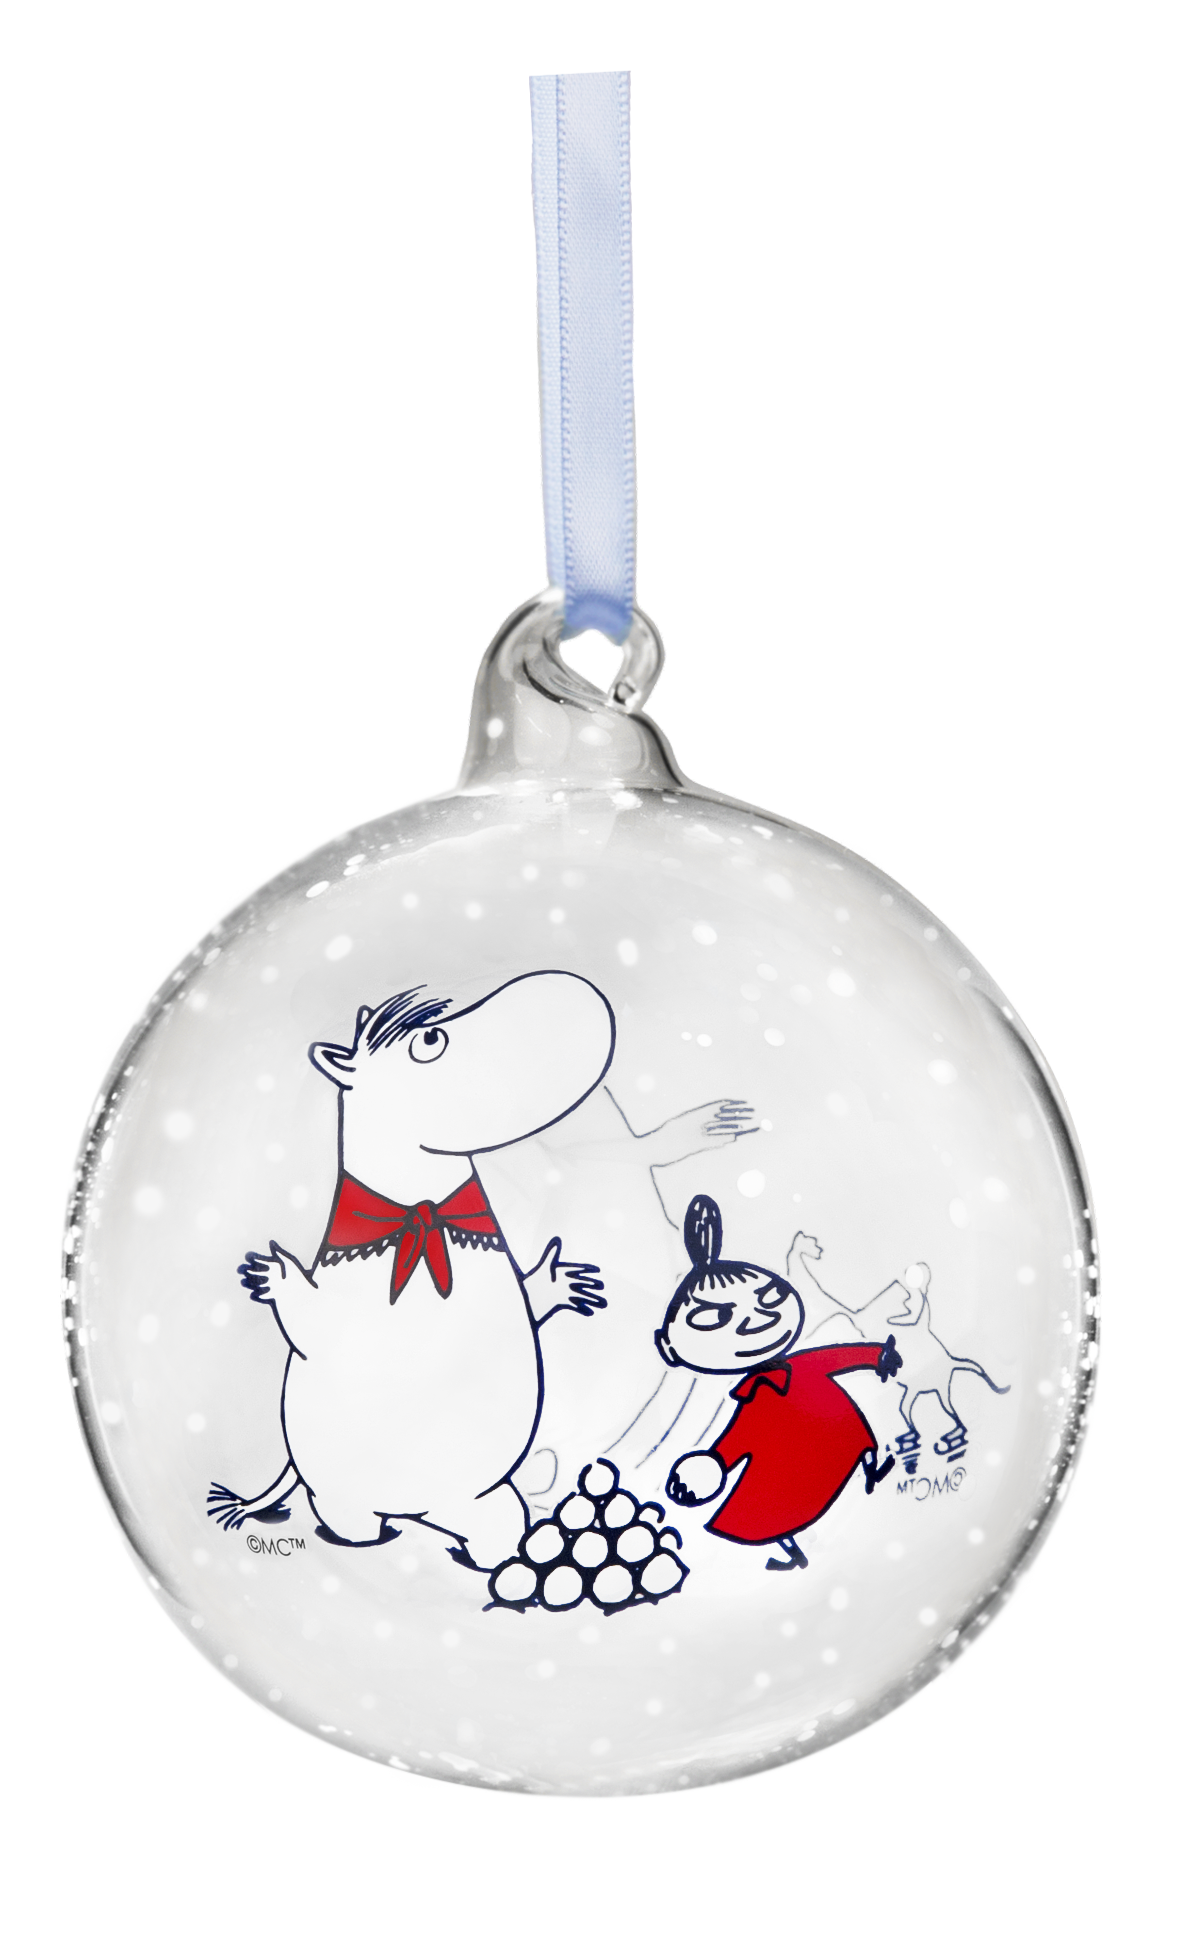 Muurla Moomin Winter Time - Moomin and Snorkmaiden decoration ball 9 cm